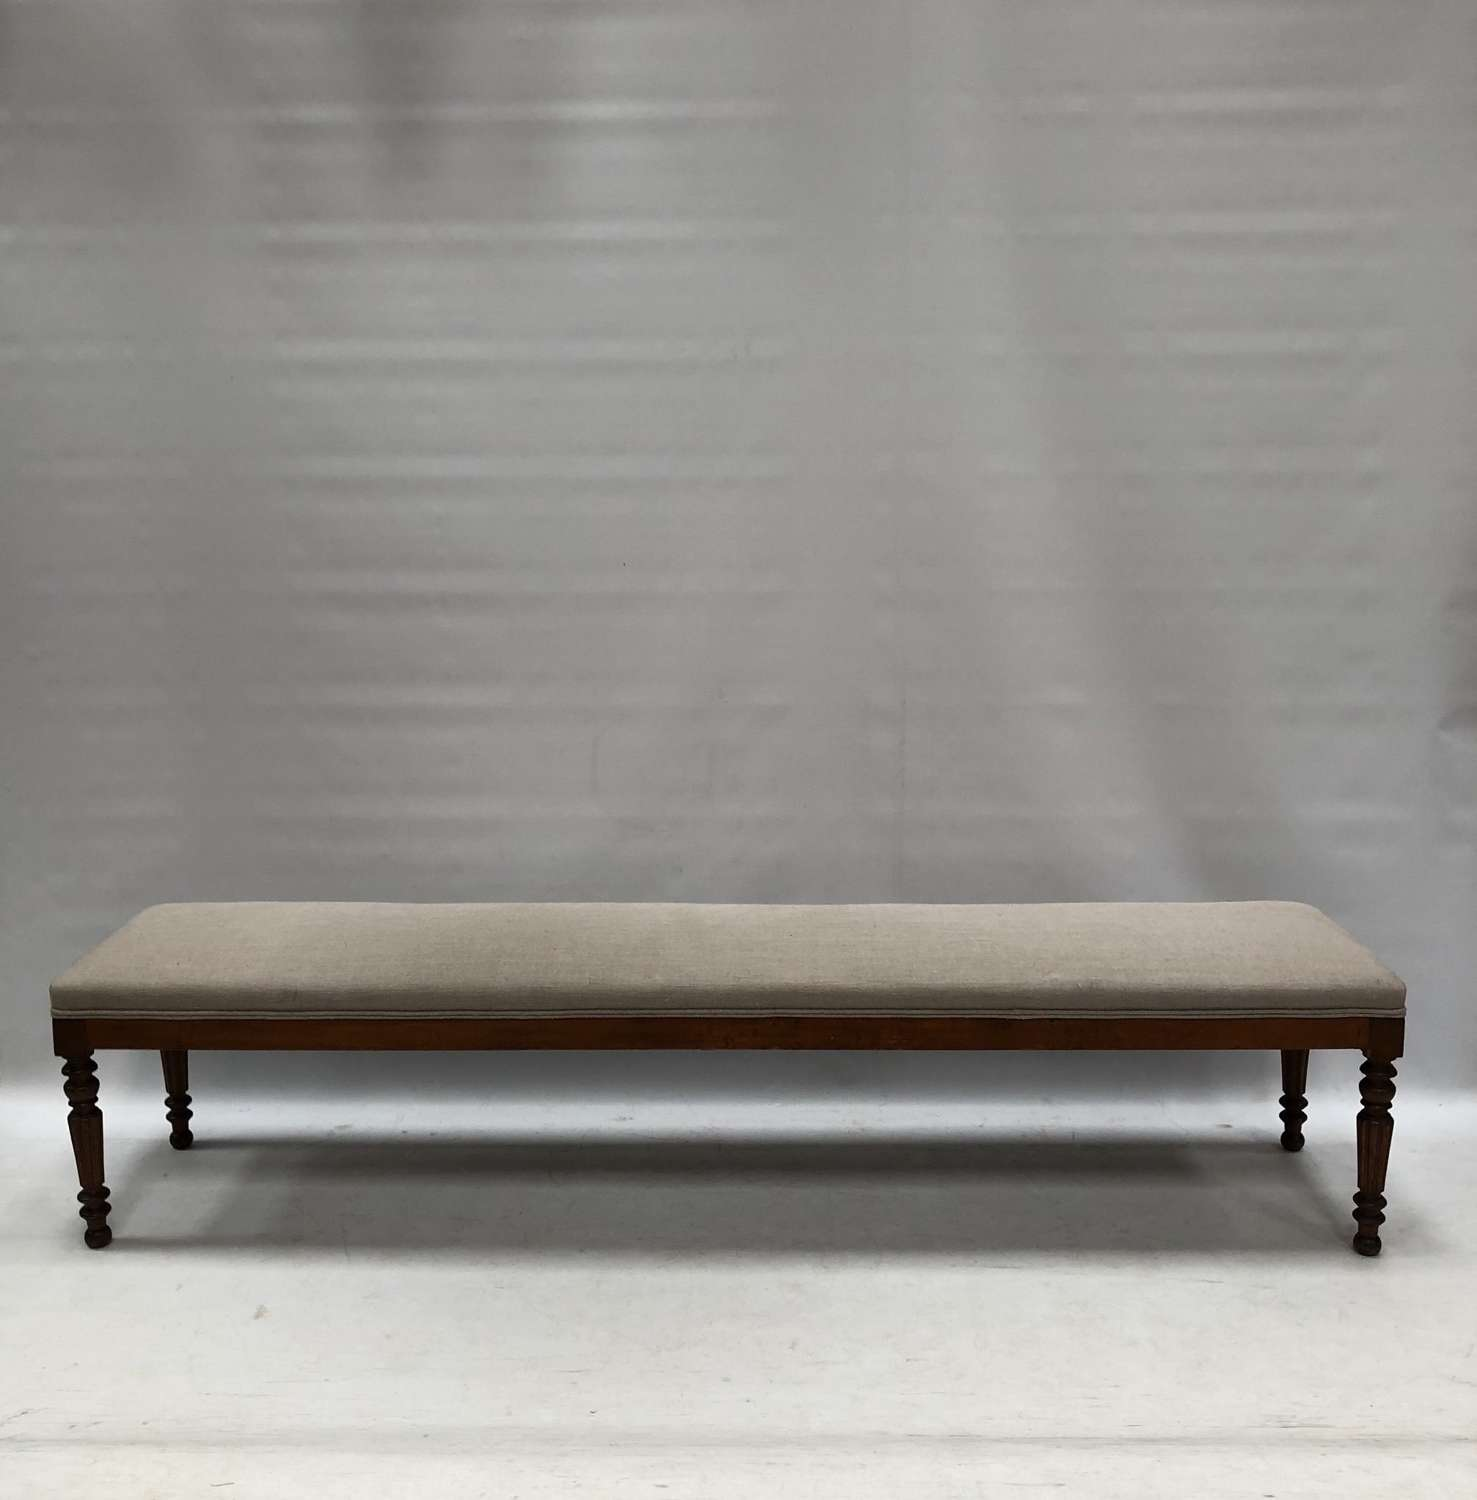 A Long banquette Stool